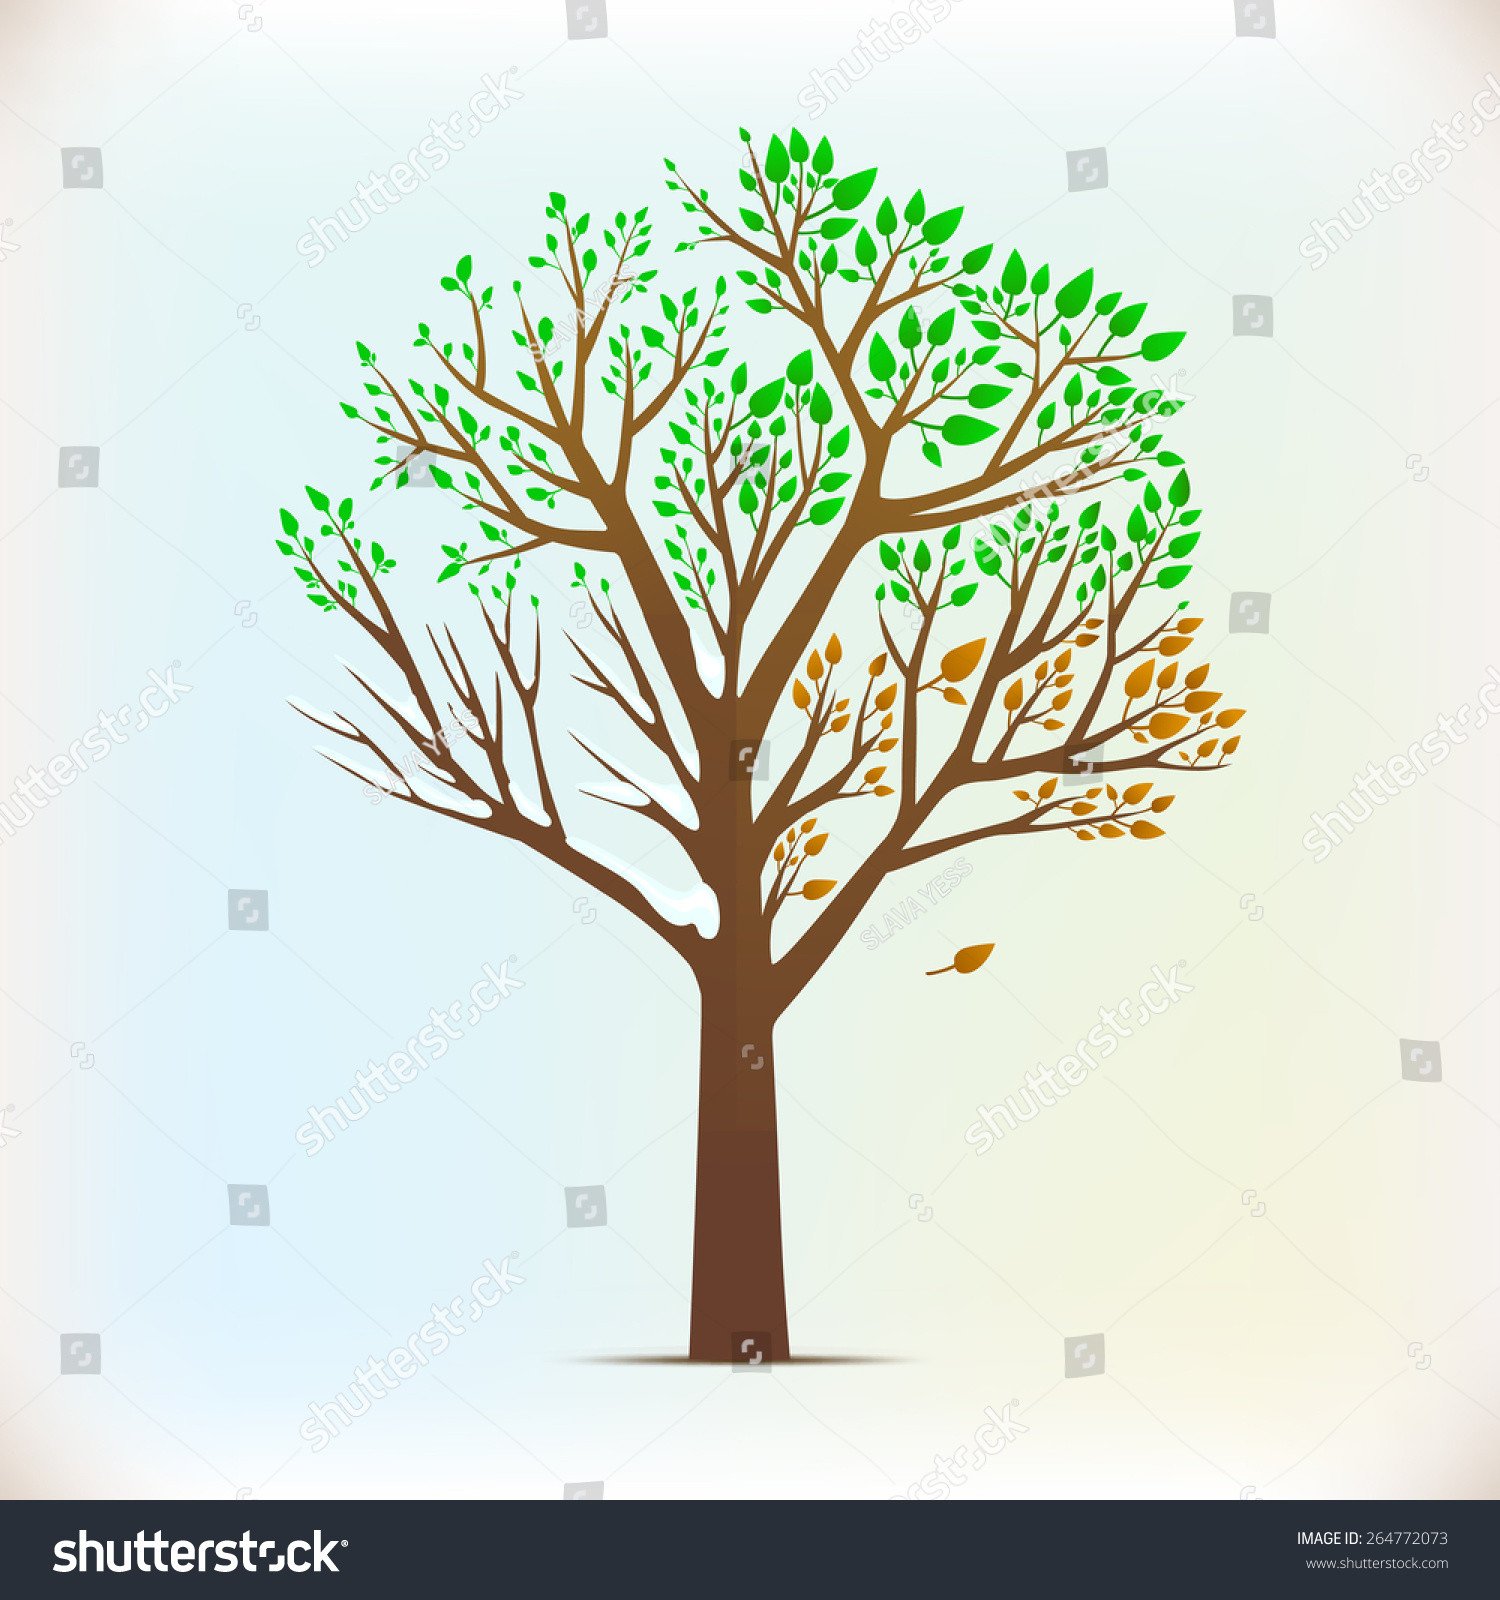 Four Seasons In One Tree Stock Vector Illustration